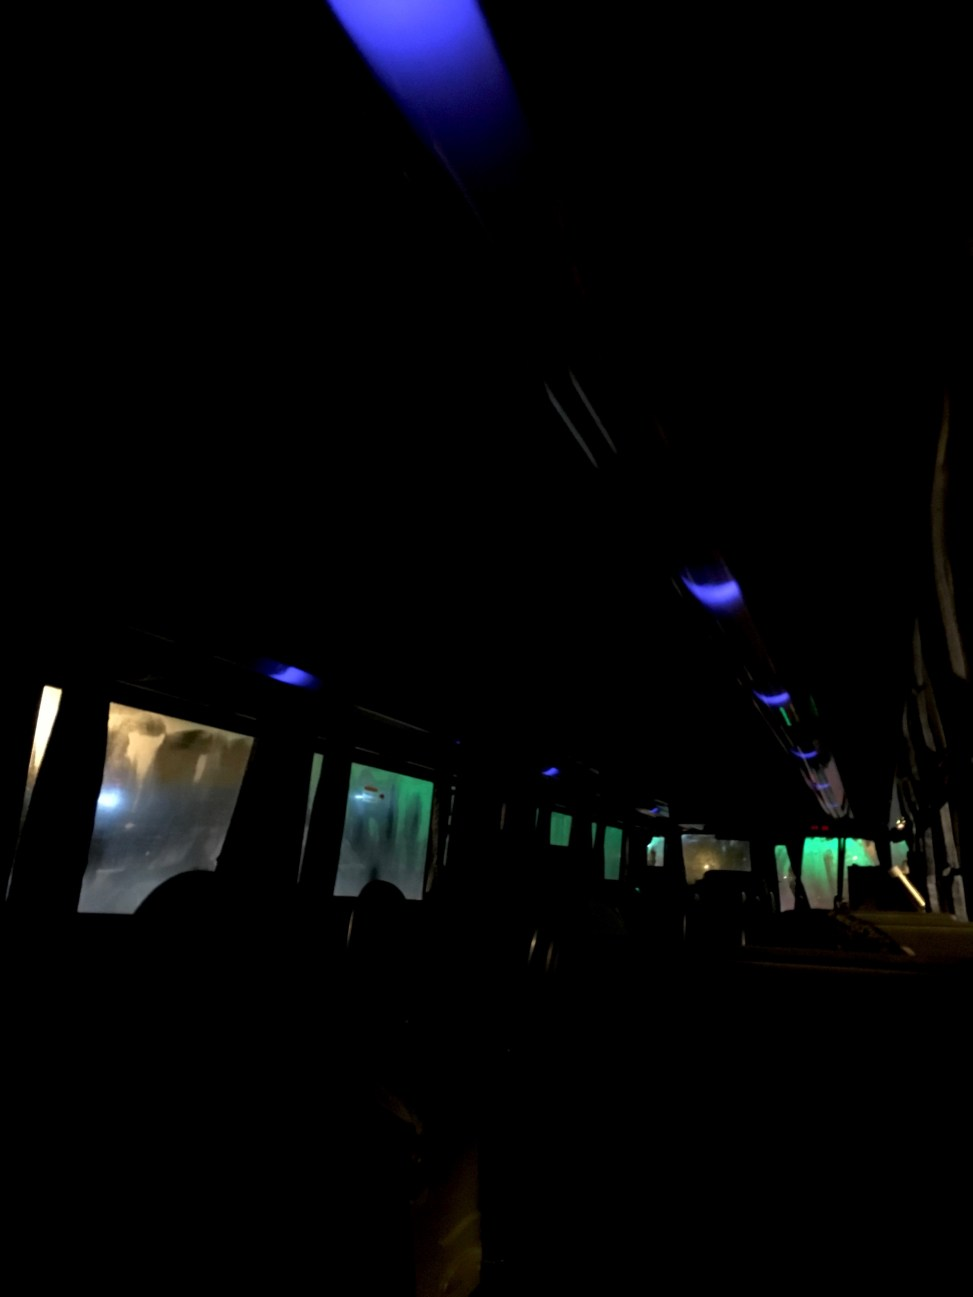 bus at night blue and green